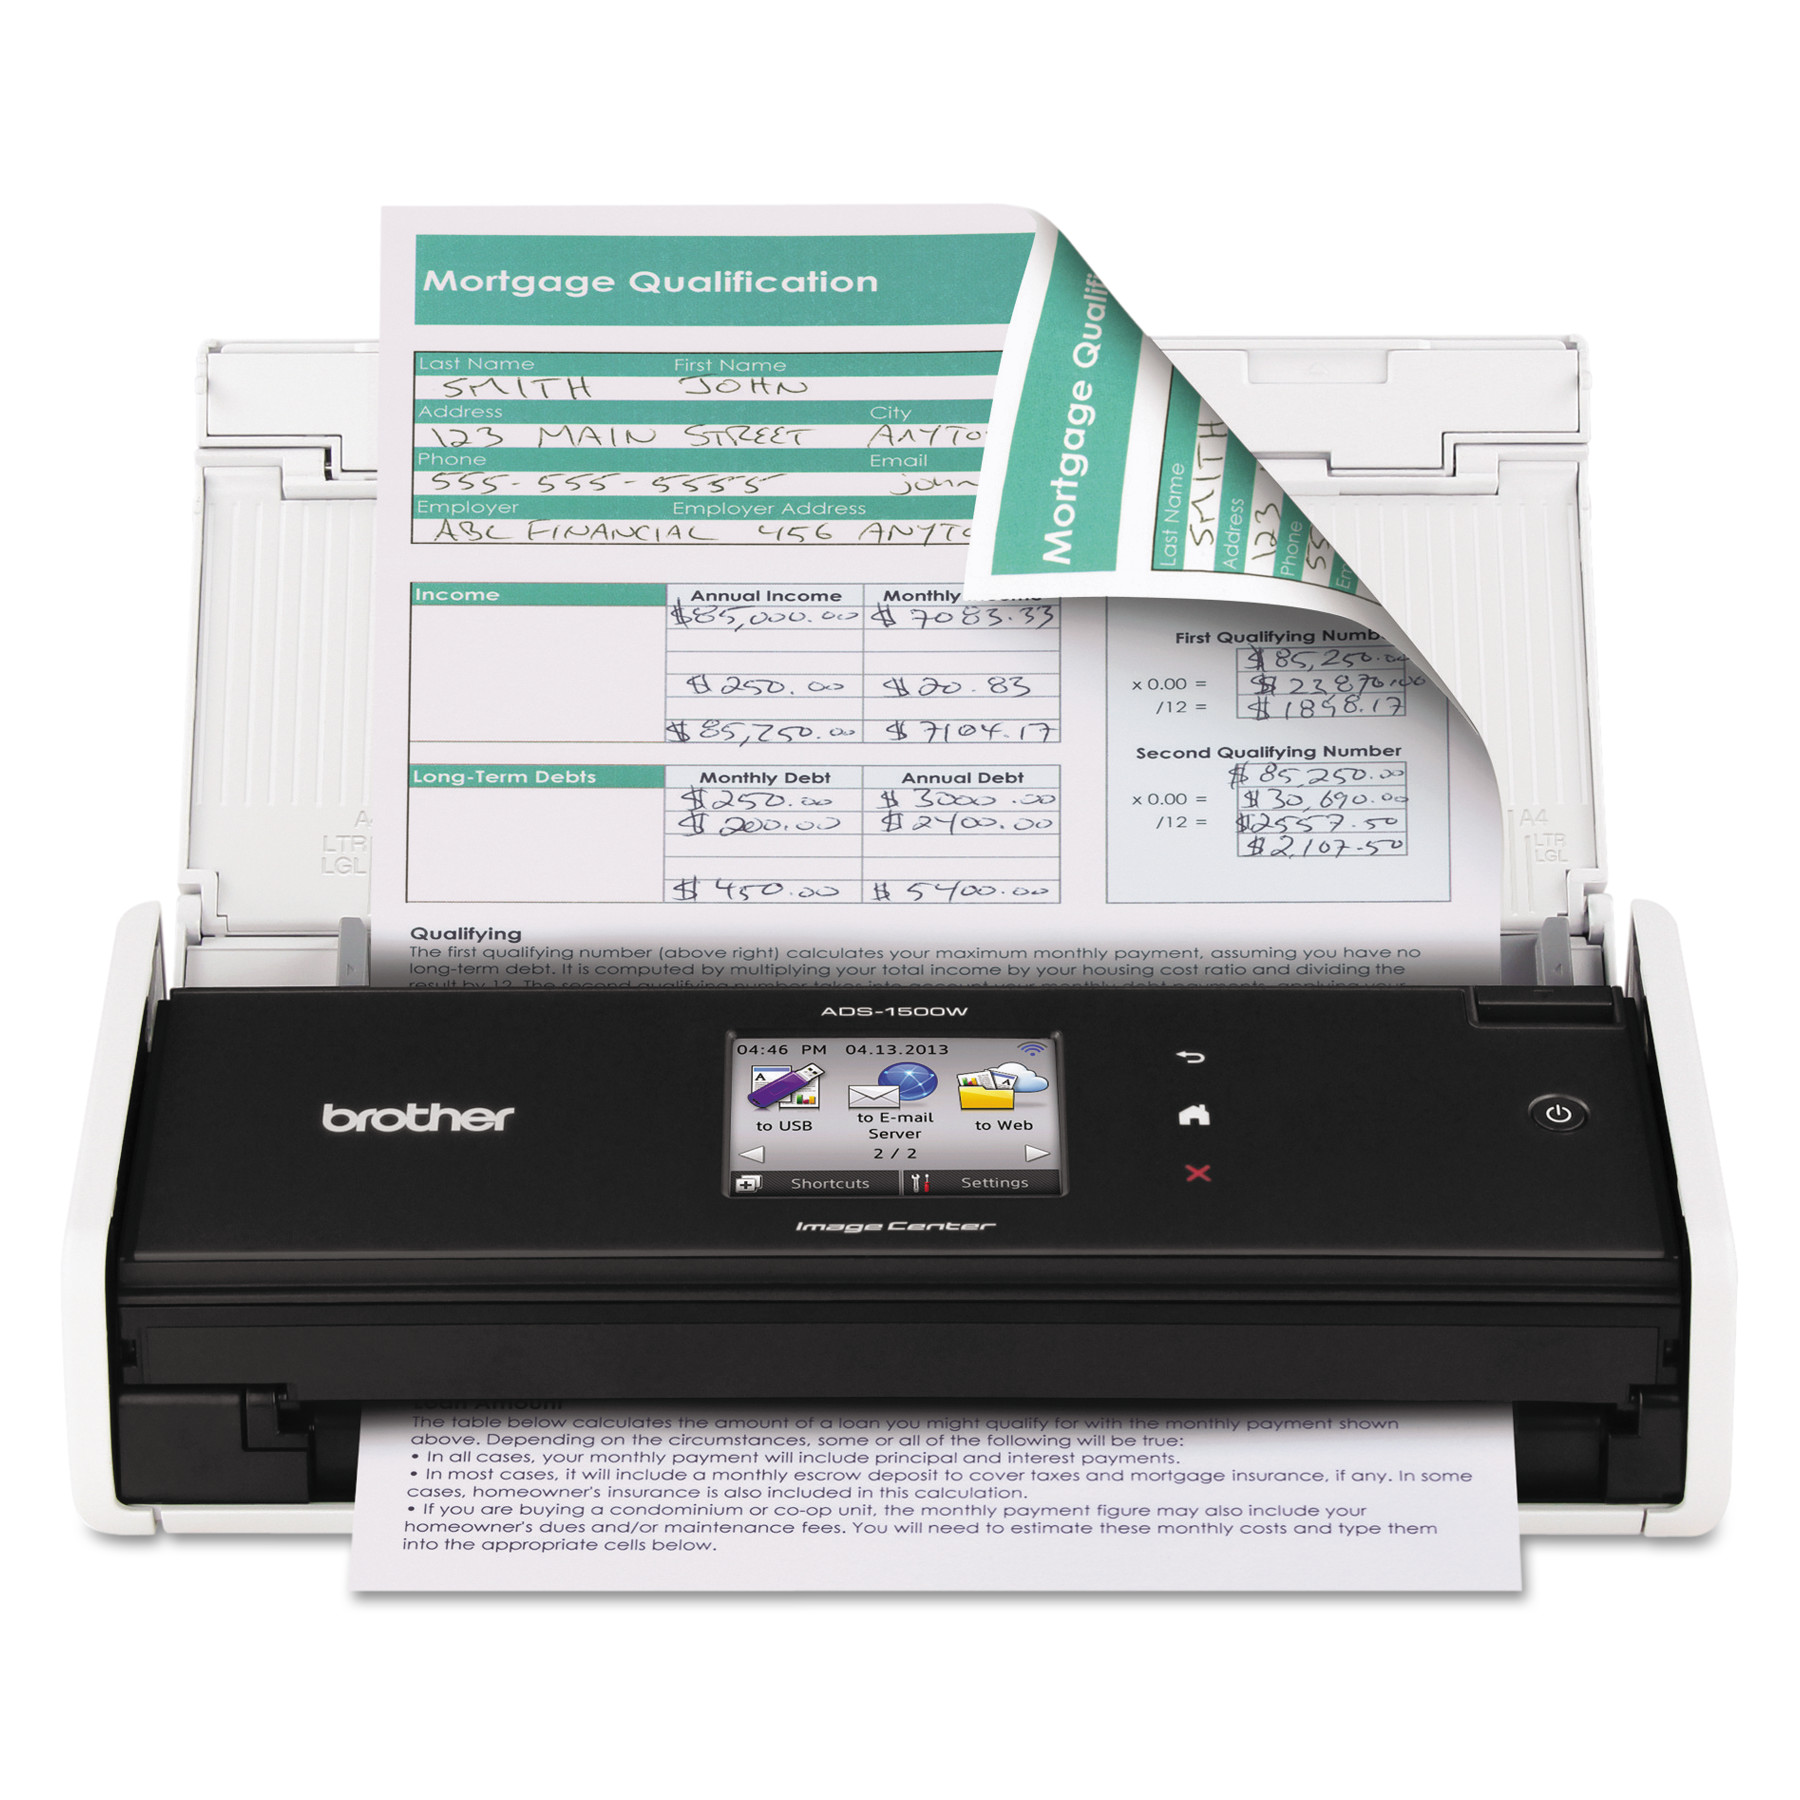 Brother ImageCenter ADS-1500W Wireless Compact Scanner, 600 x 600 dpi, 20 Sheet ADF